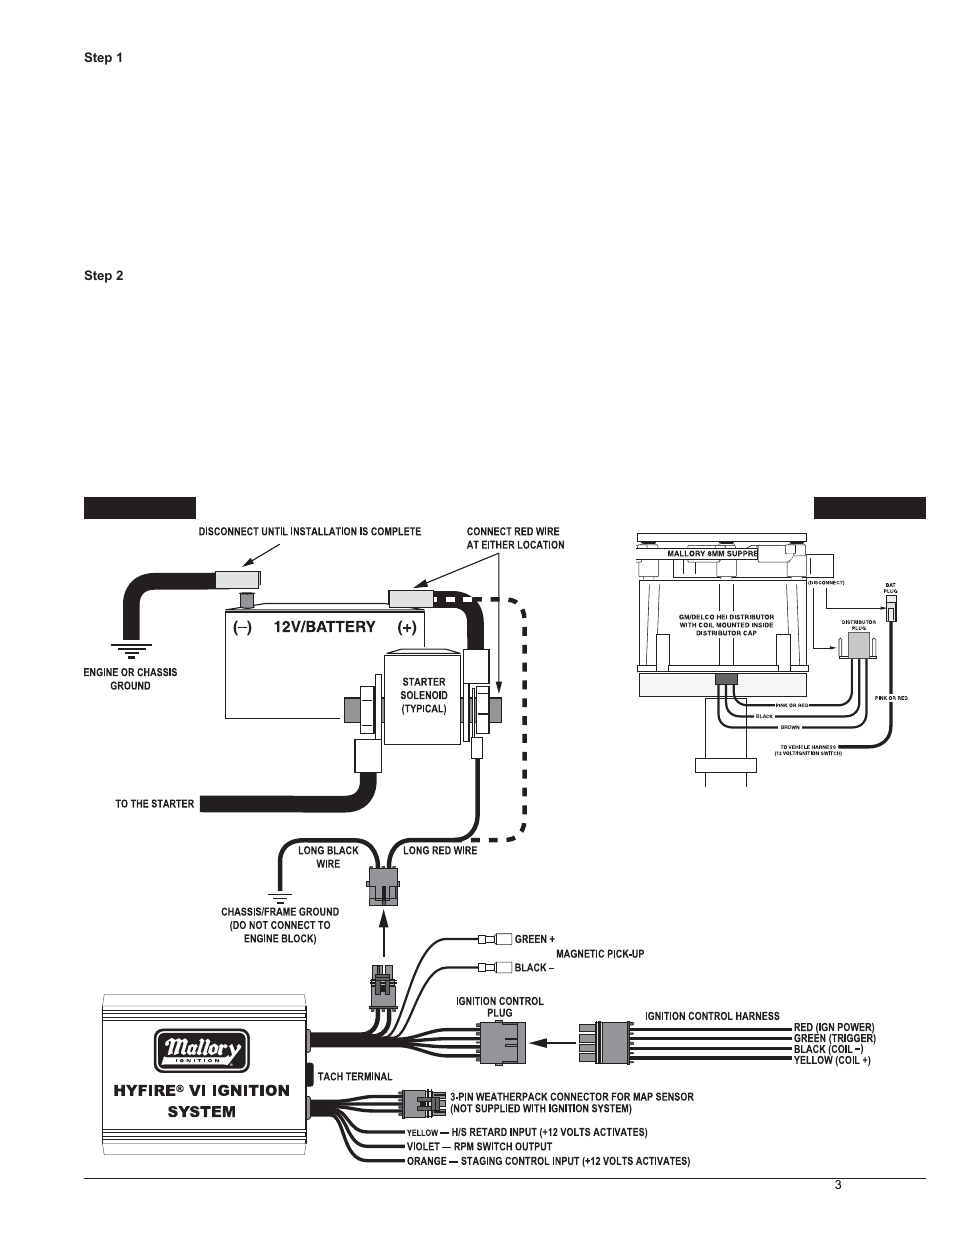 medium resolution of mallory hyfire wiring diagram wiring diagram centrebasic wiring procedure mallory ignition mallory hyfire vi seriesbasic wiring